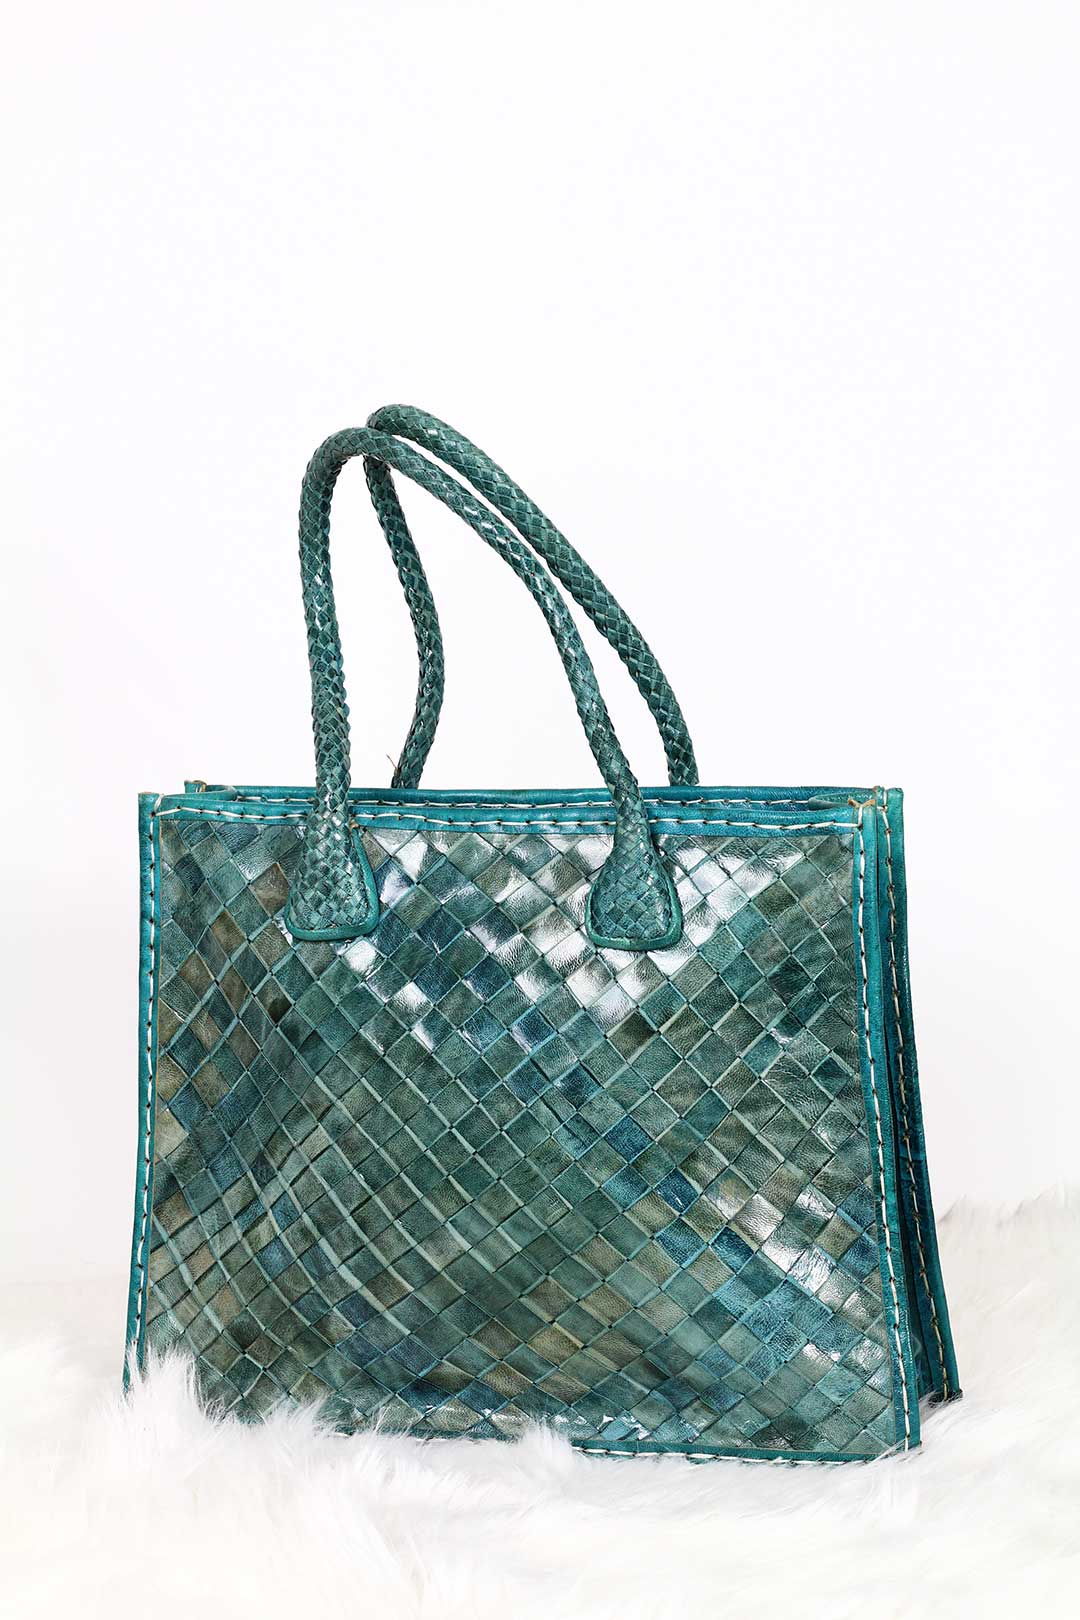 Turquoise Woven Leather Tote bag